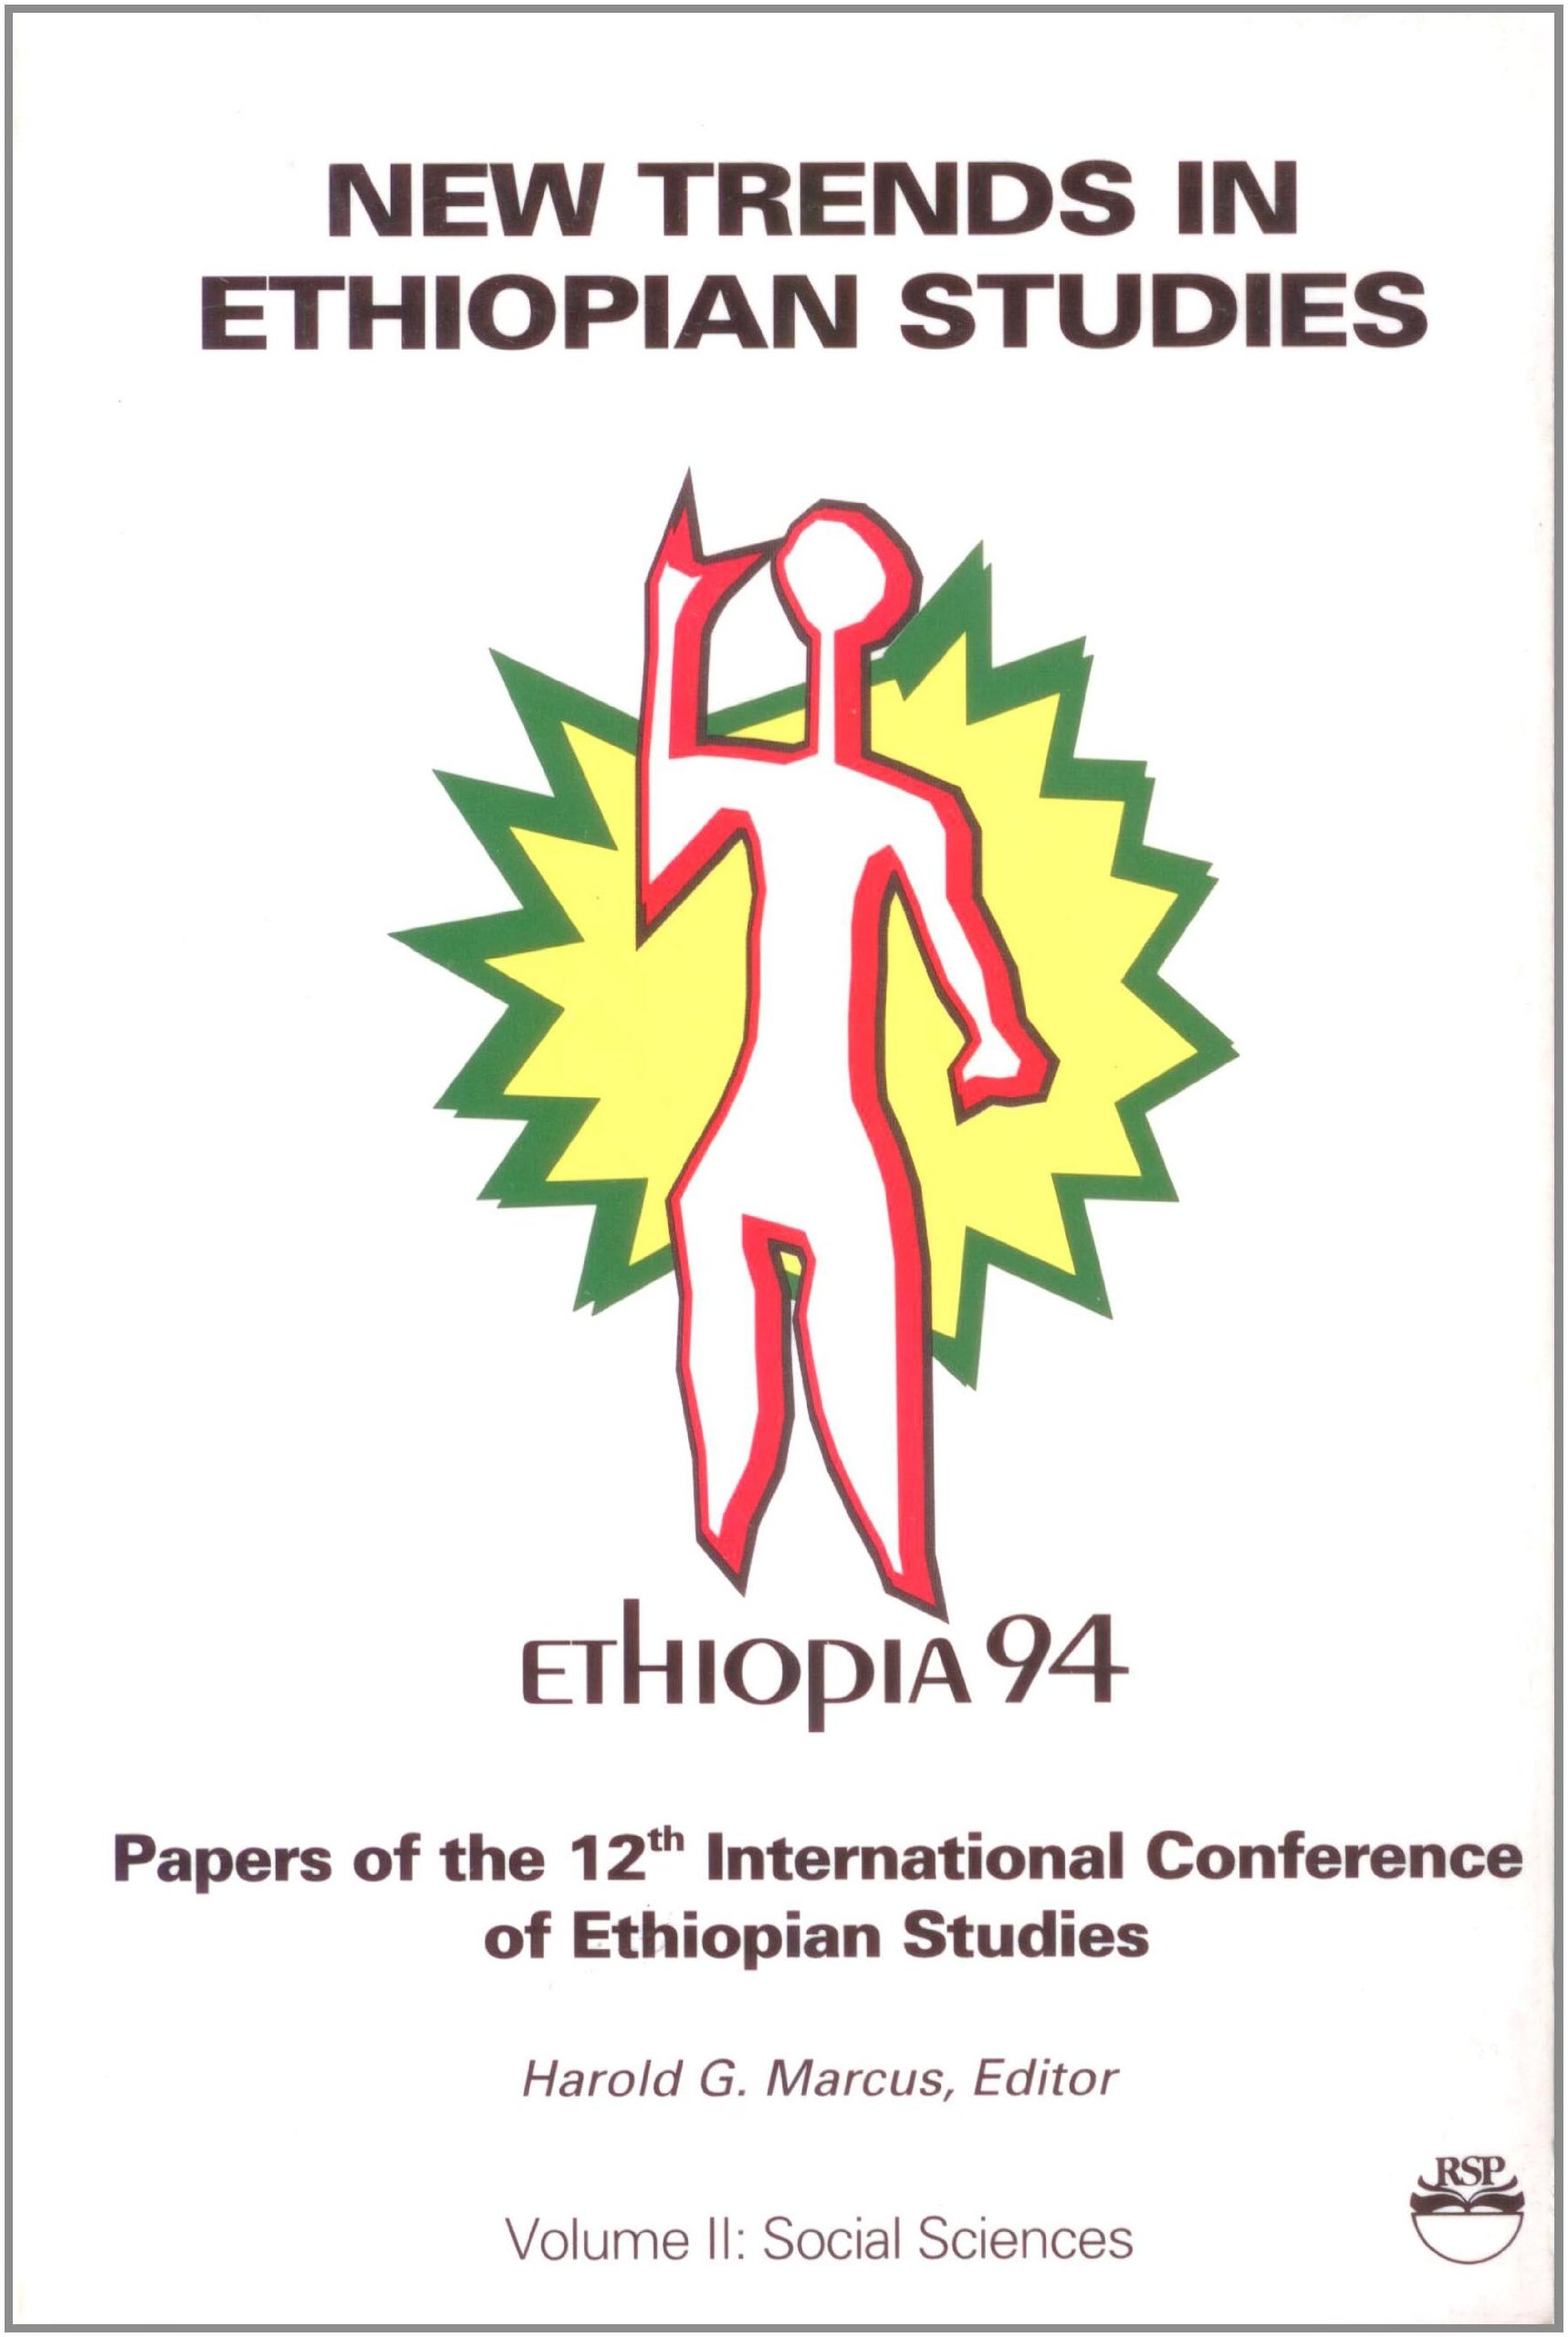 New Trends in Ethiopian Studies: Papers of the 12th International Conference of Ethiopian Studies Michigan State University 5-10 September 1994 : Social Sciences